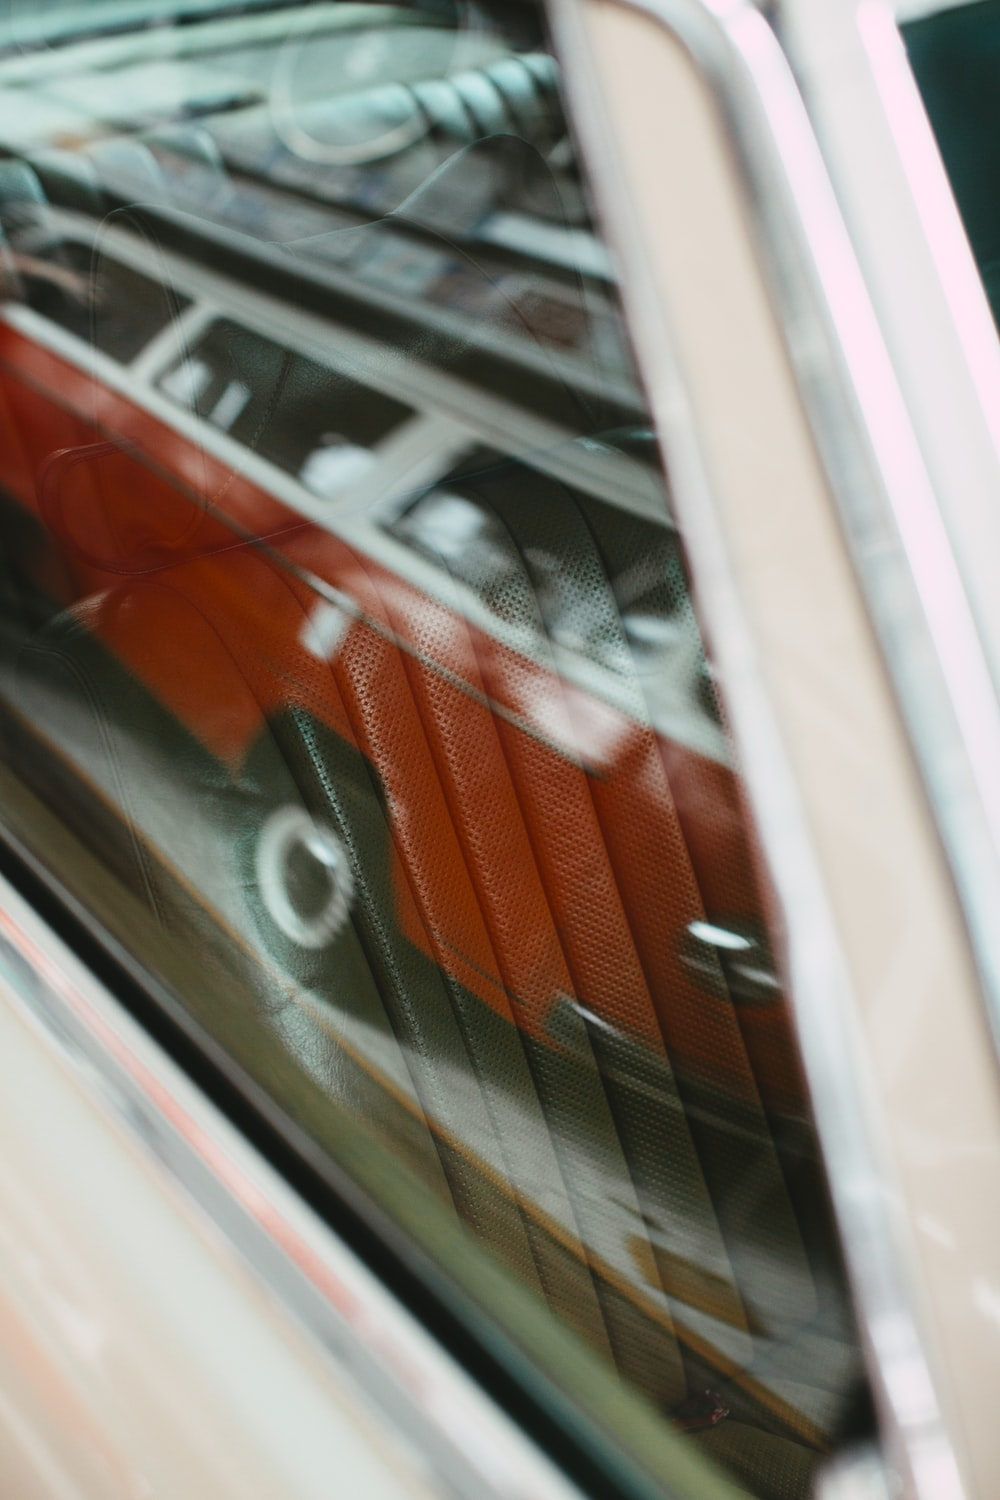 red and white car door